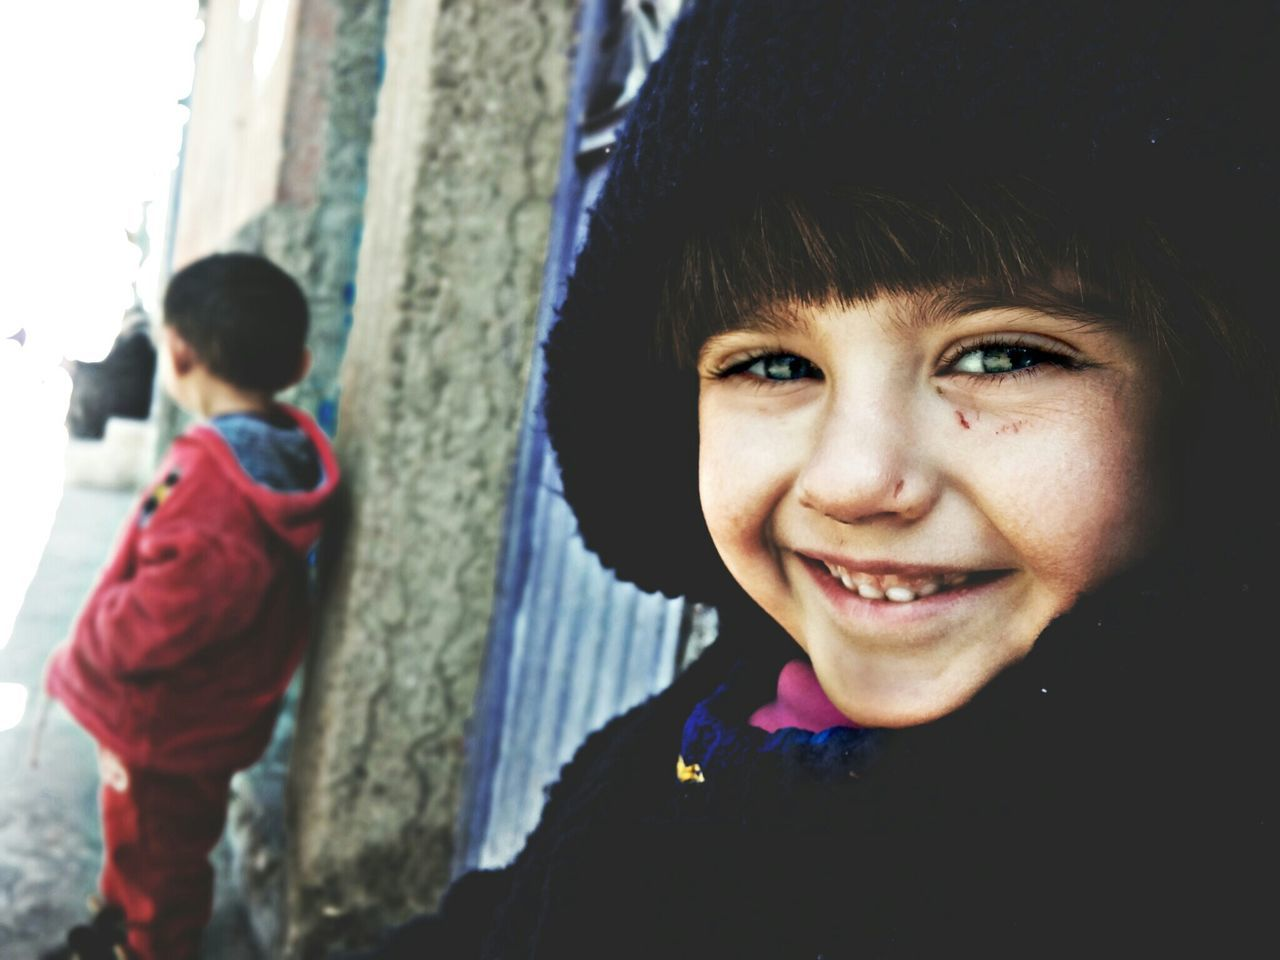 Portre Çalışmamızın Ilk Urunu :)Child Boys Looking At Camera Portrait Childhood Children Only Knit Hat Smiling Males  Casual Clothing Fun Outdoors Winter Happiness Cheerful People Warm Clothing Close-up Cold Temperature Human Body Part Hanging Out Relaxing Photography Turkey First Eyeem Photo